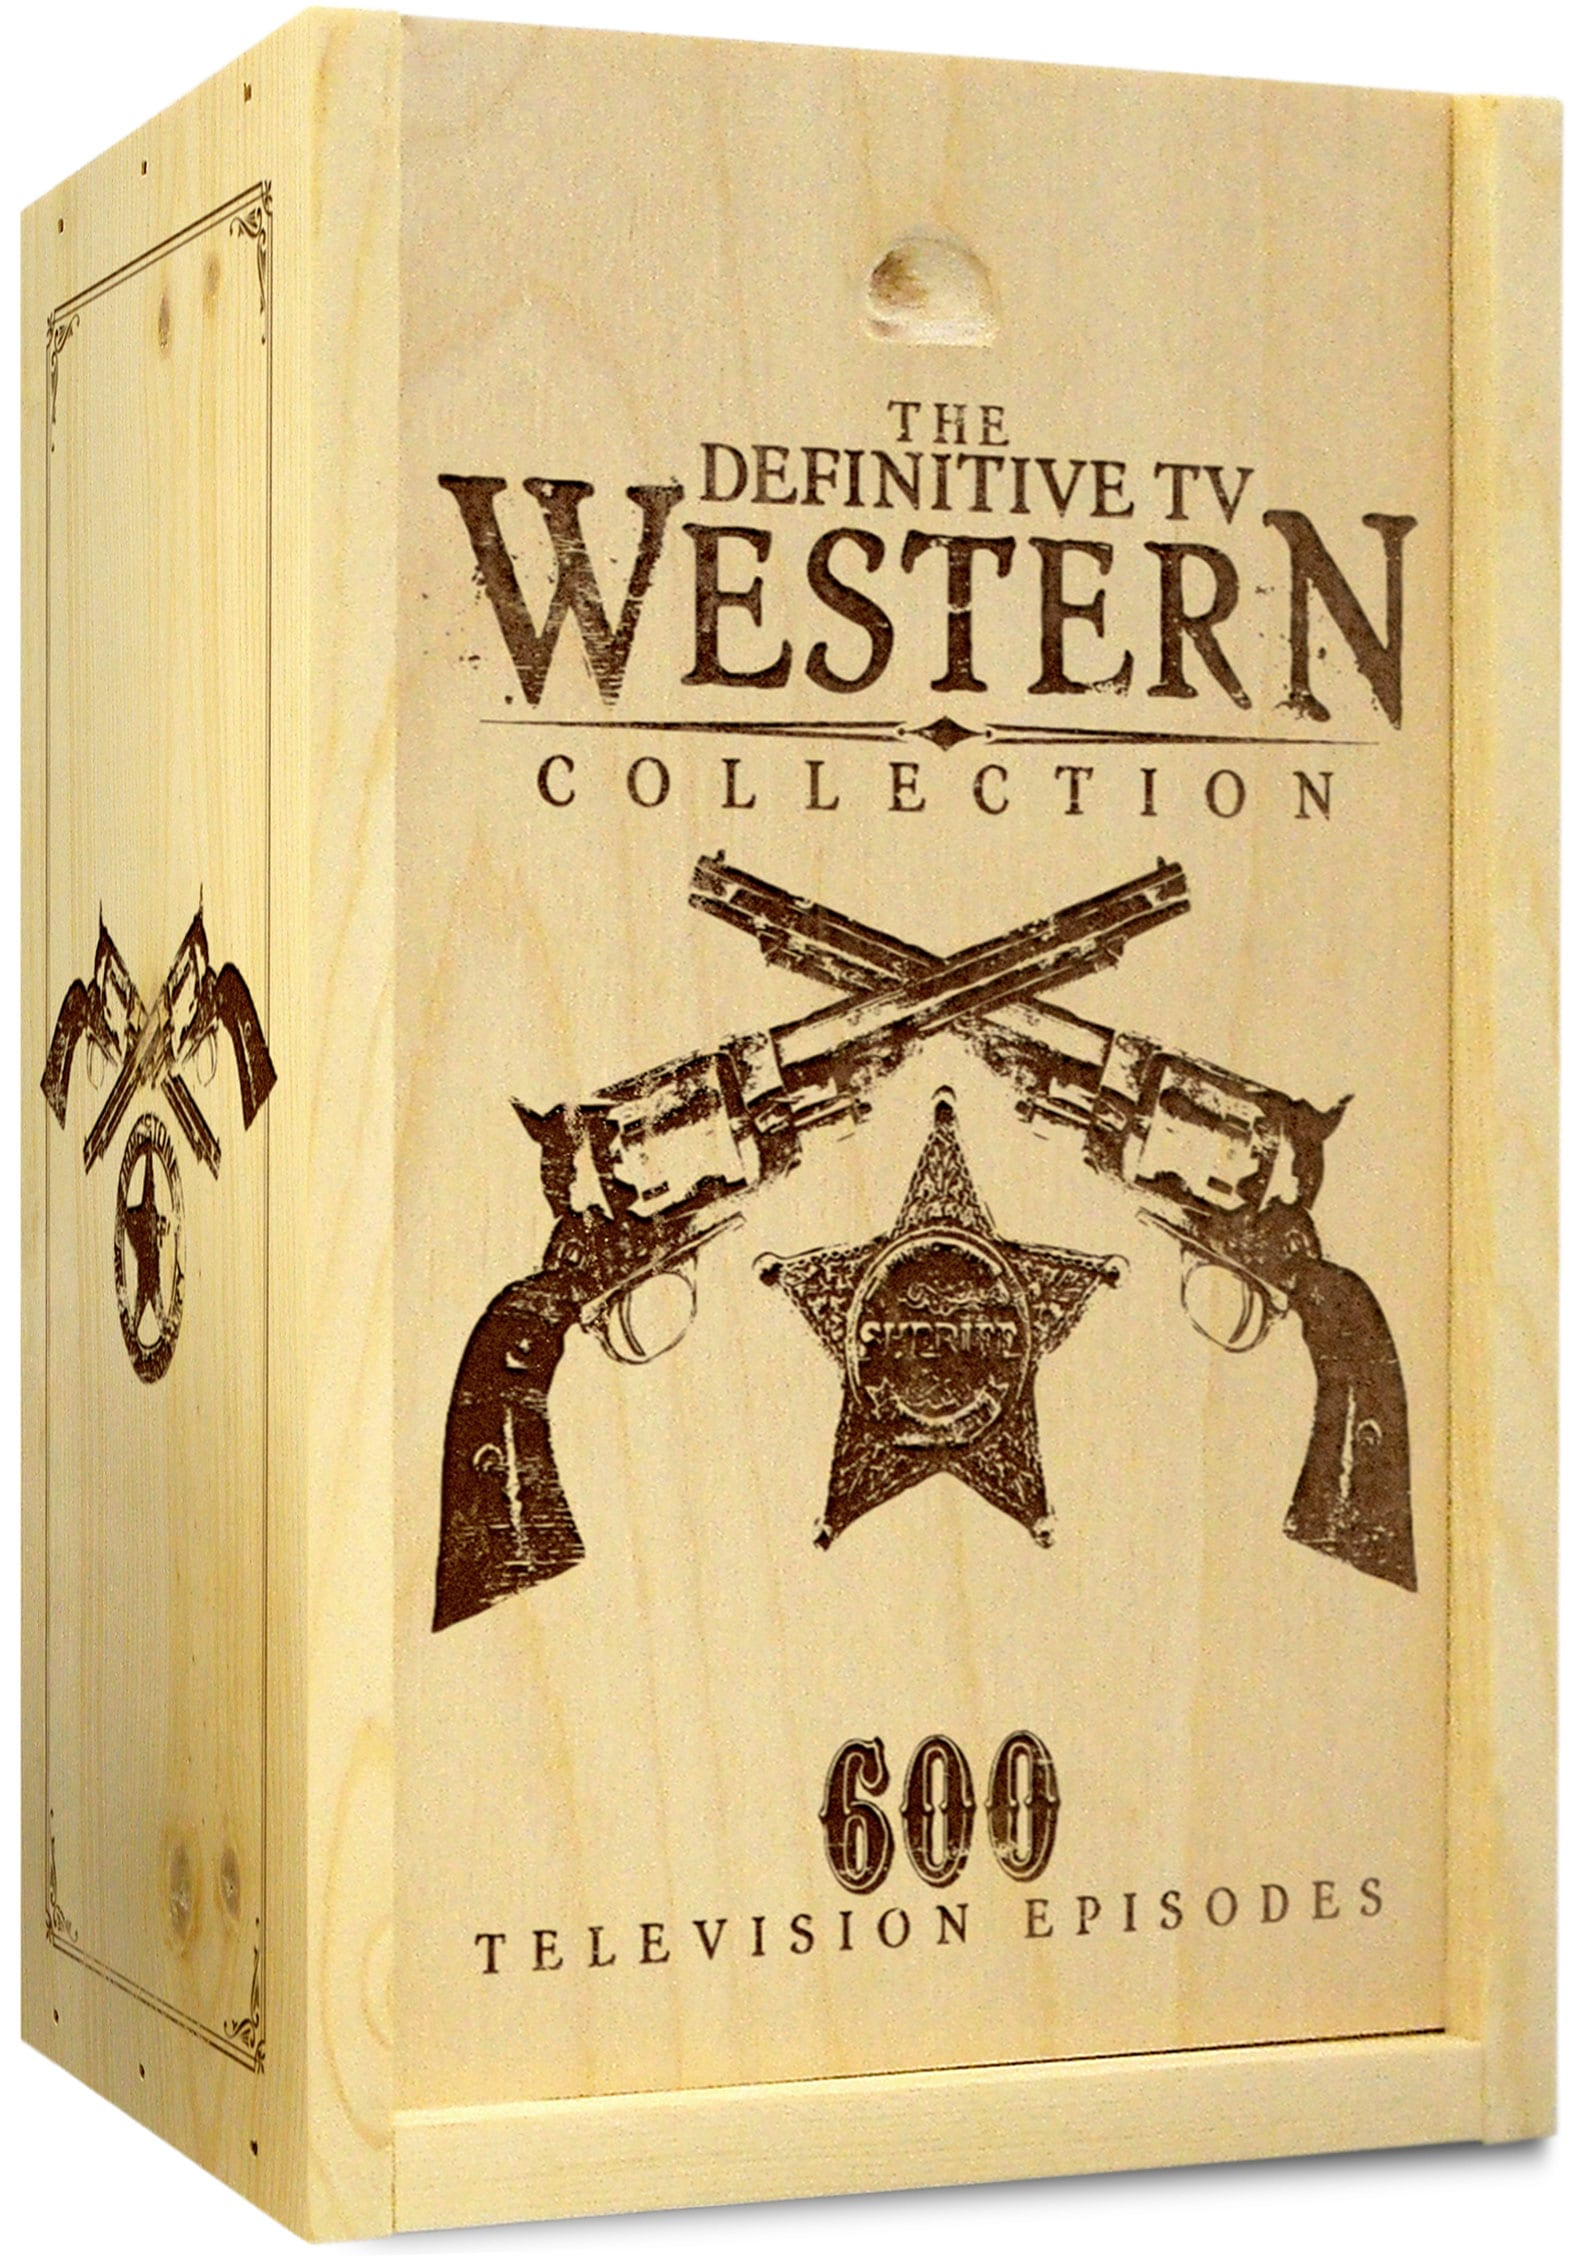 The Definitive TV Western Collection (DVD)